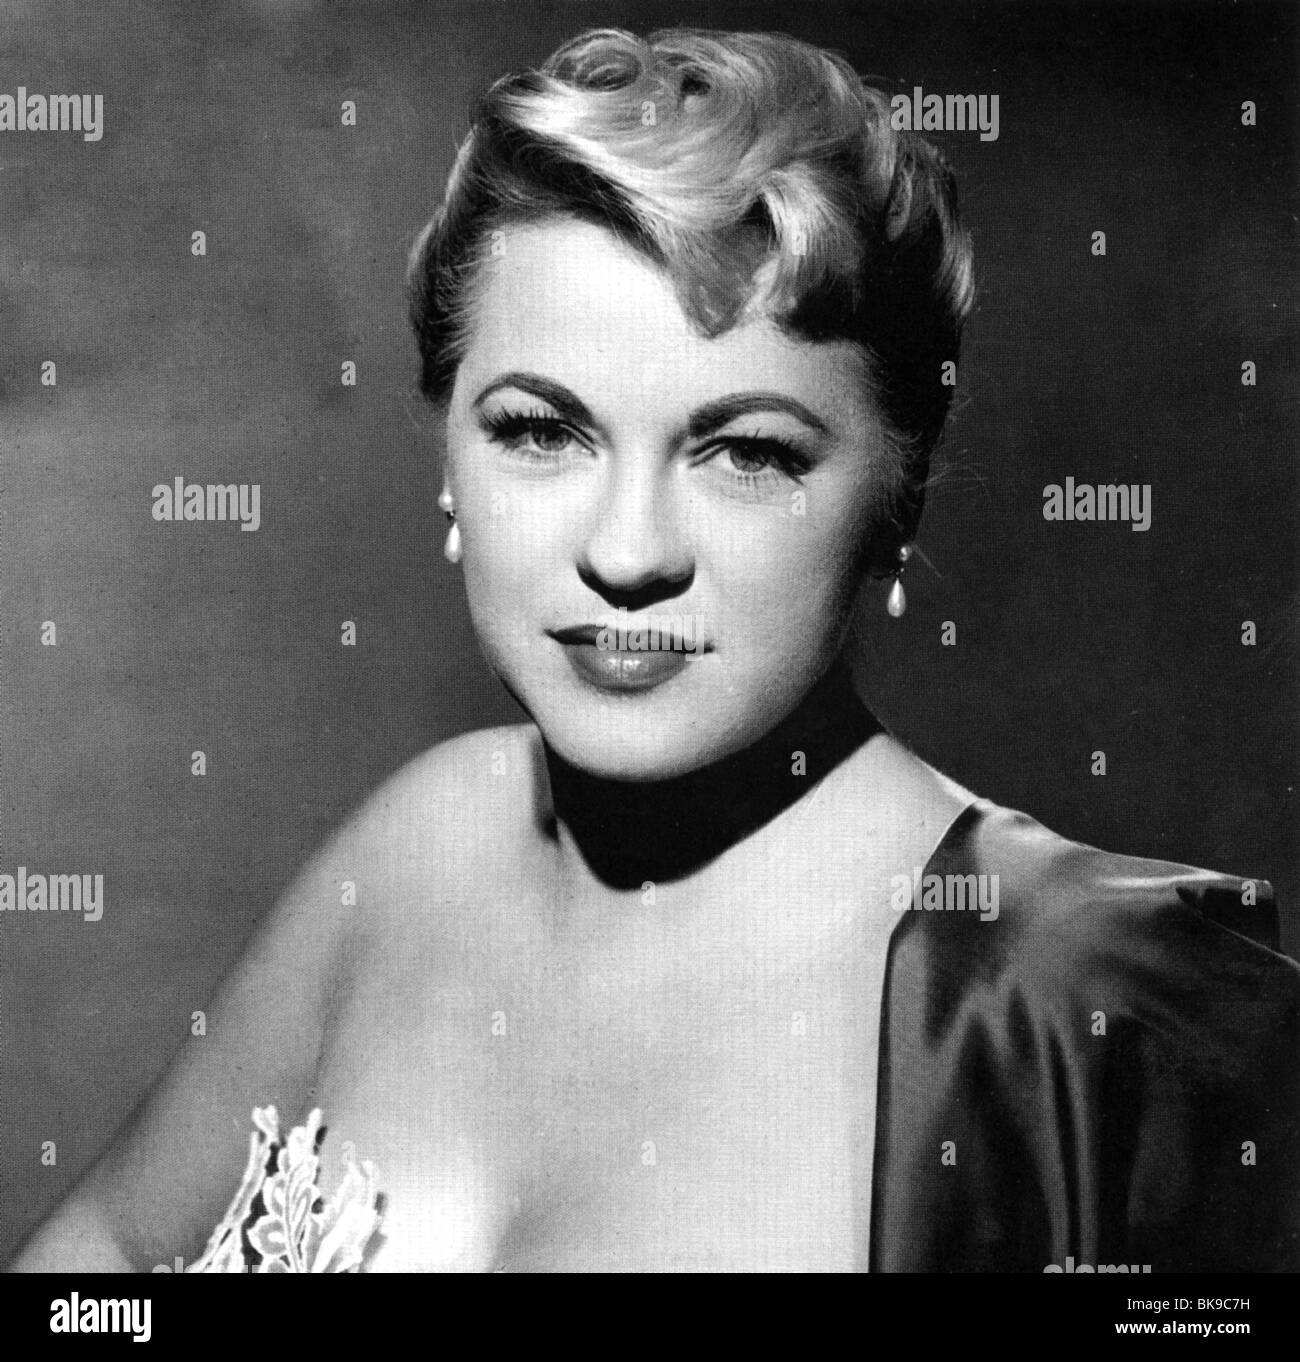 JERI SOUTHERN - US jazz pianist and singer (1926 -1991) - Stock Image